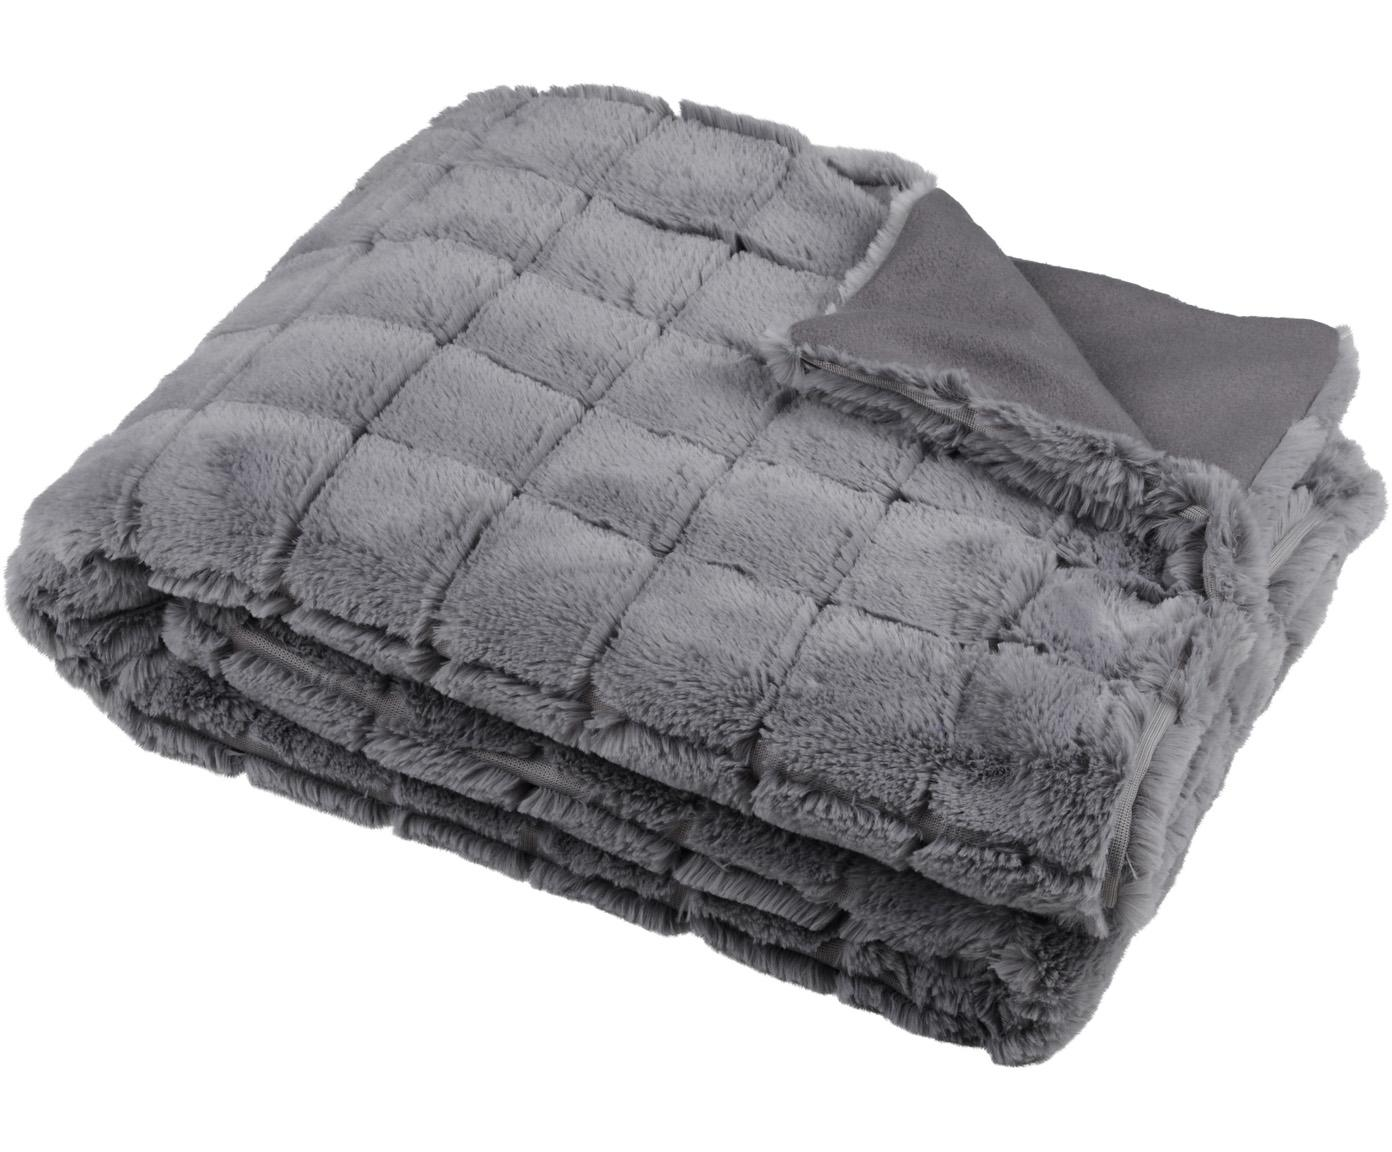 Flauschiges Plaid Hamilton, 100% Polyester, Grau, 130 x 150 cm